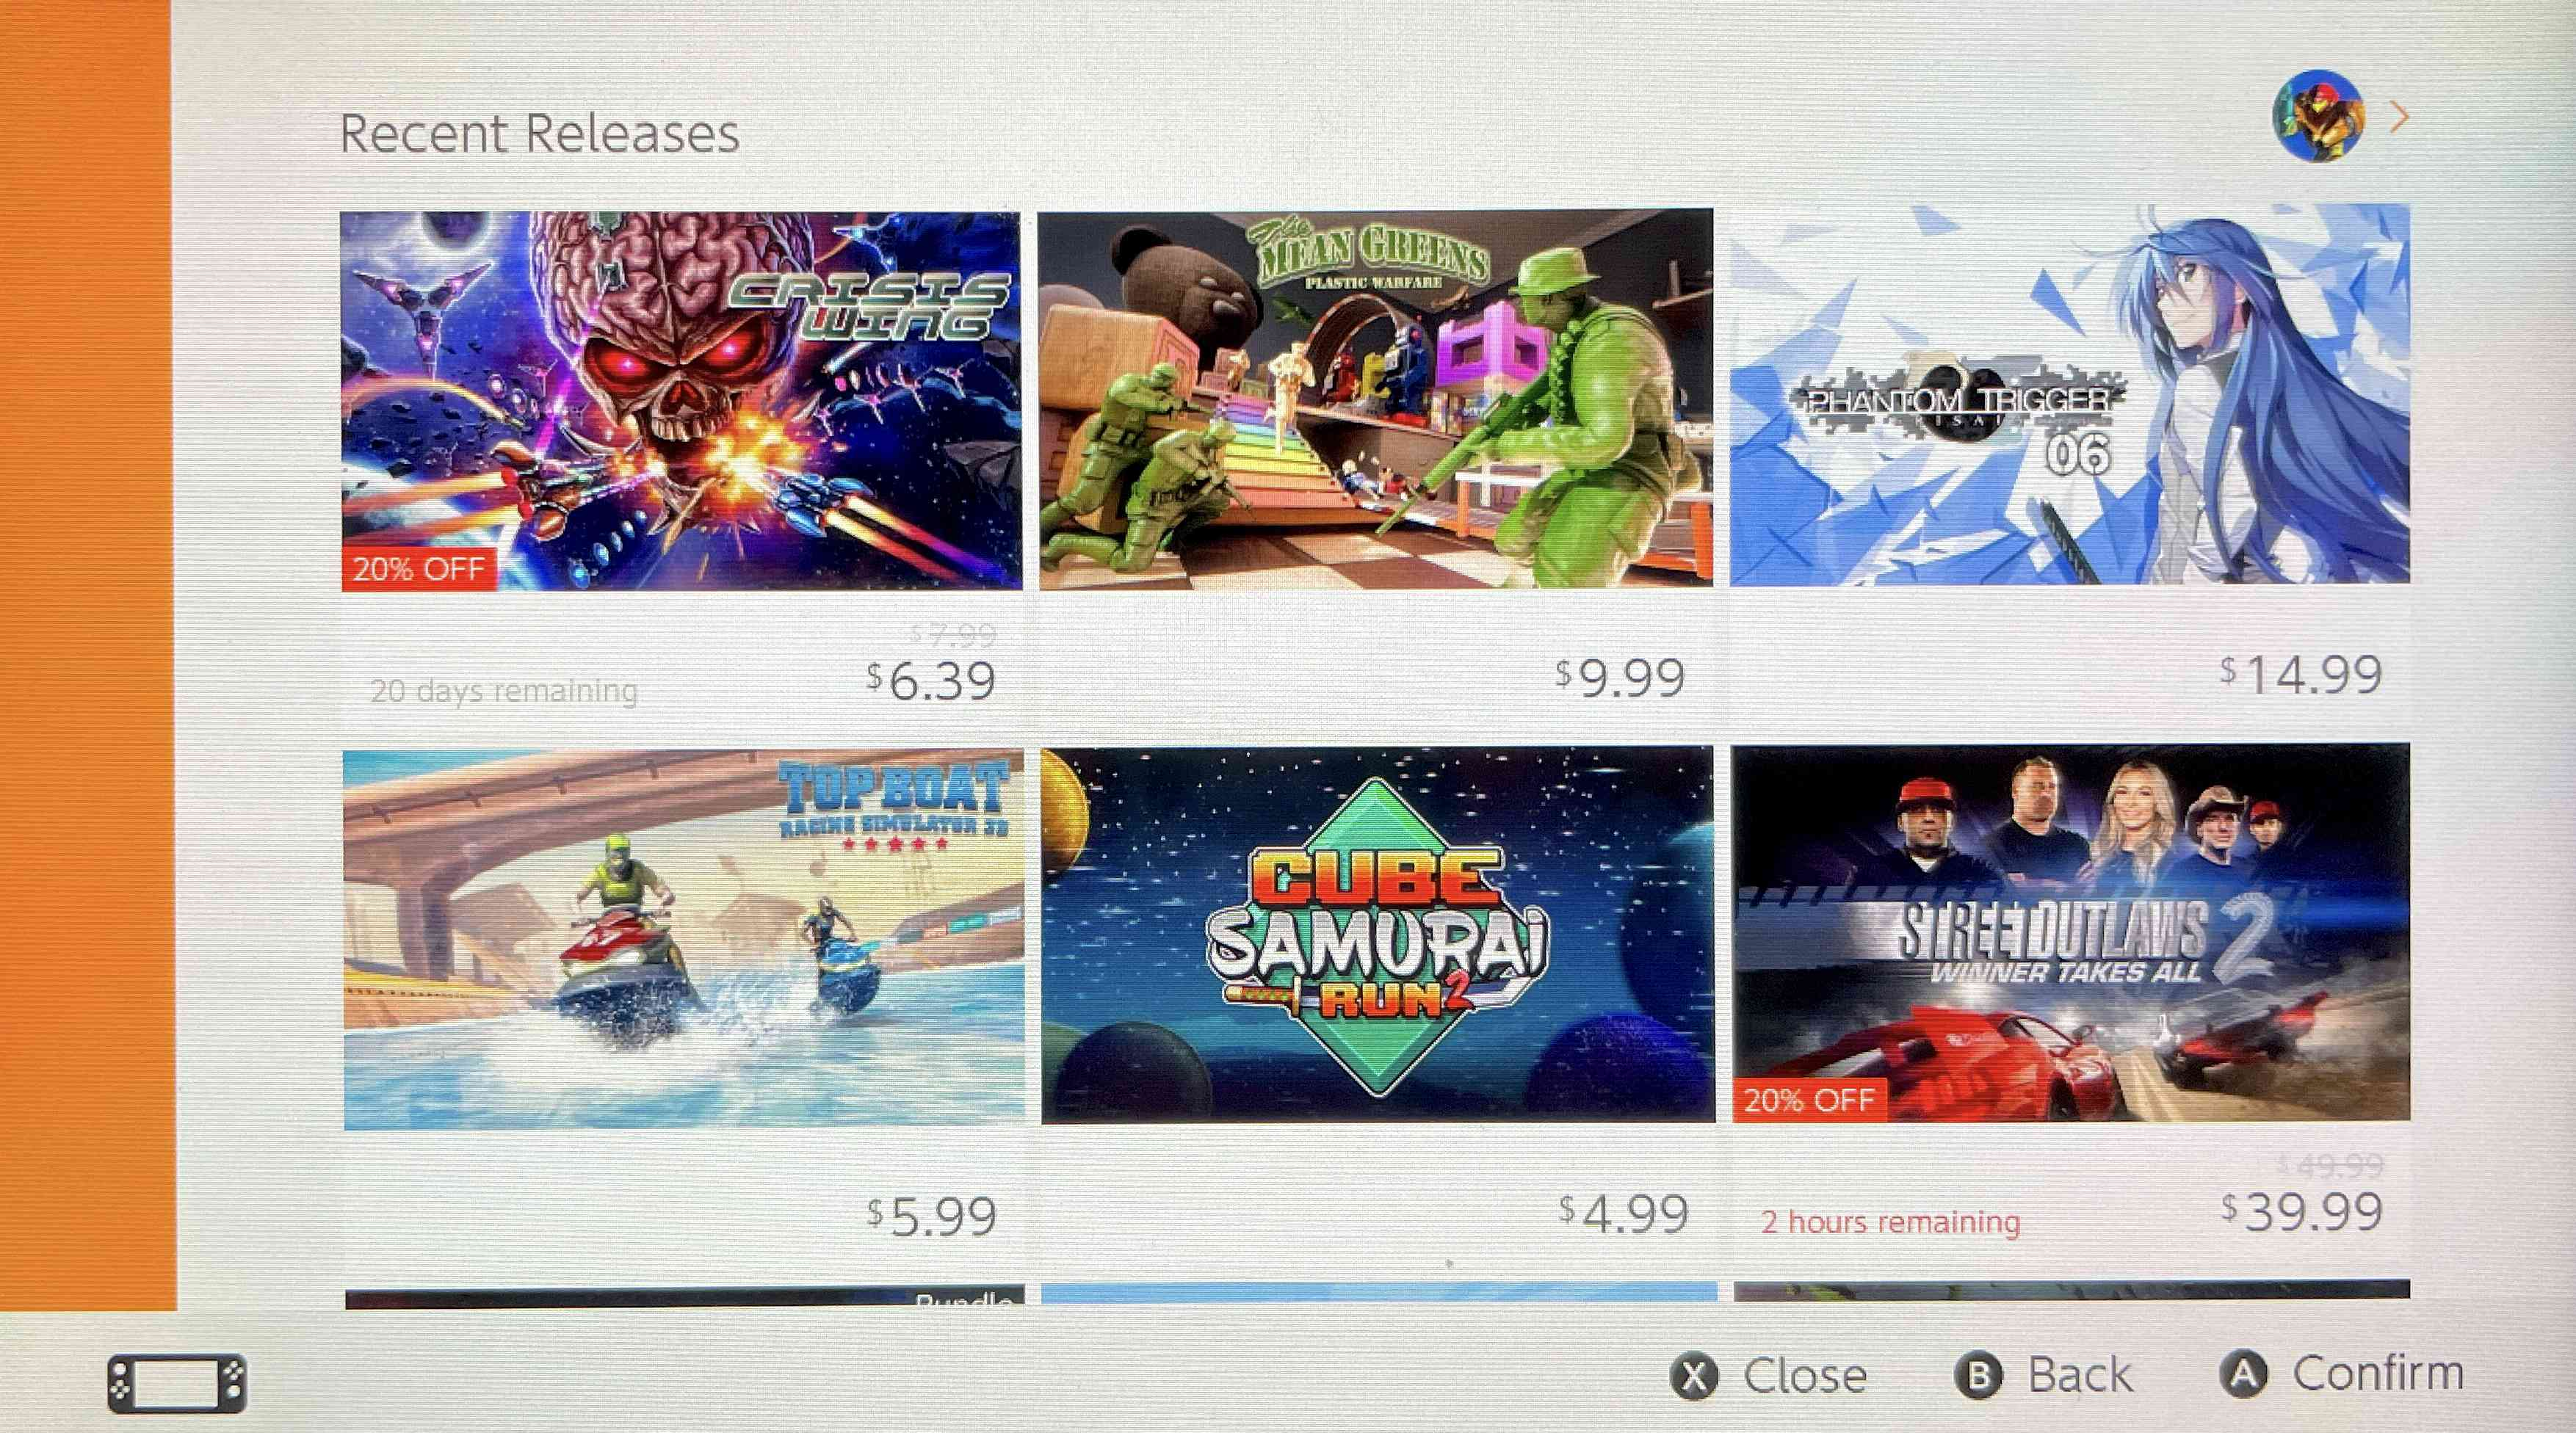 A screenshot of the Recent Releases in the Nintendo E-Shoppe.